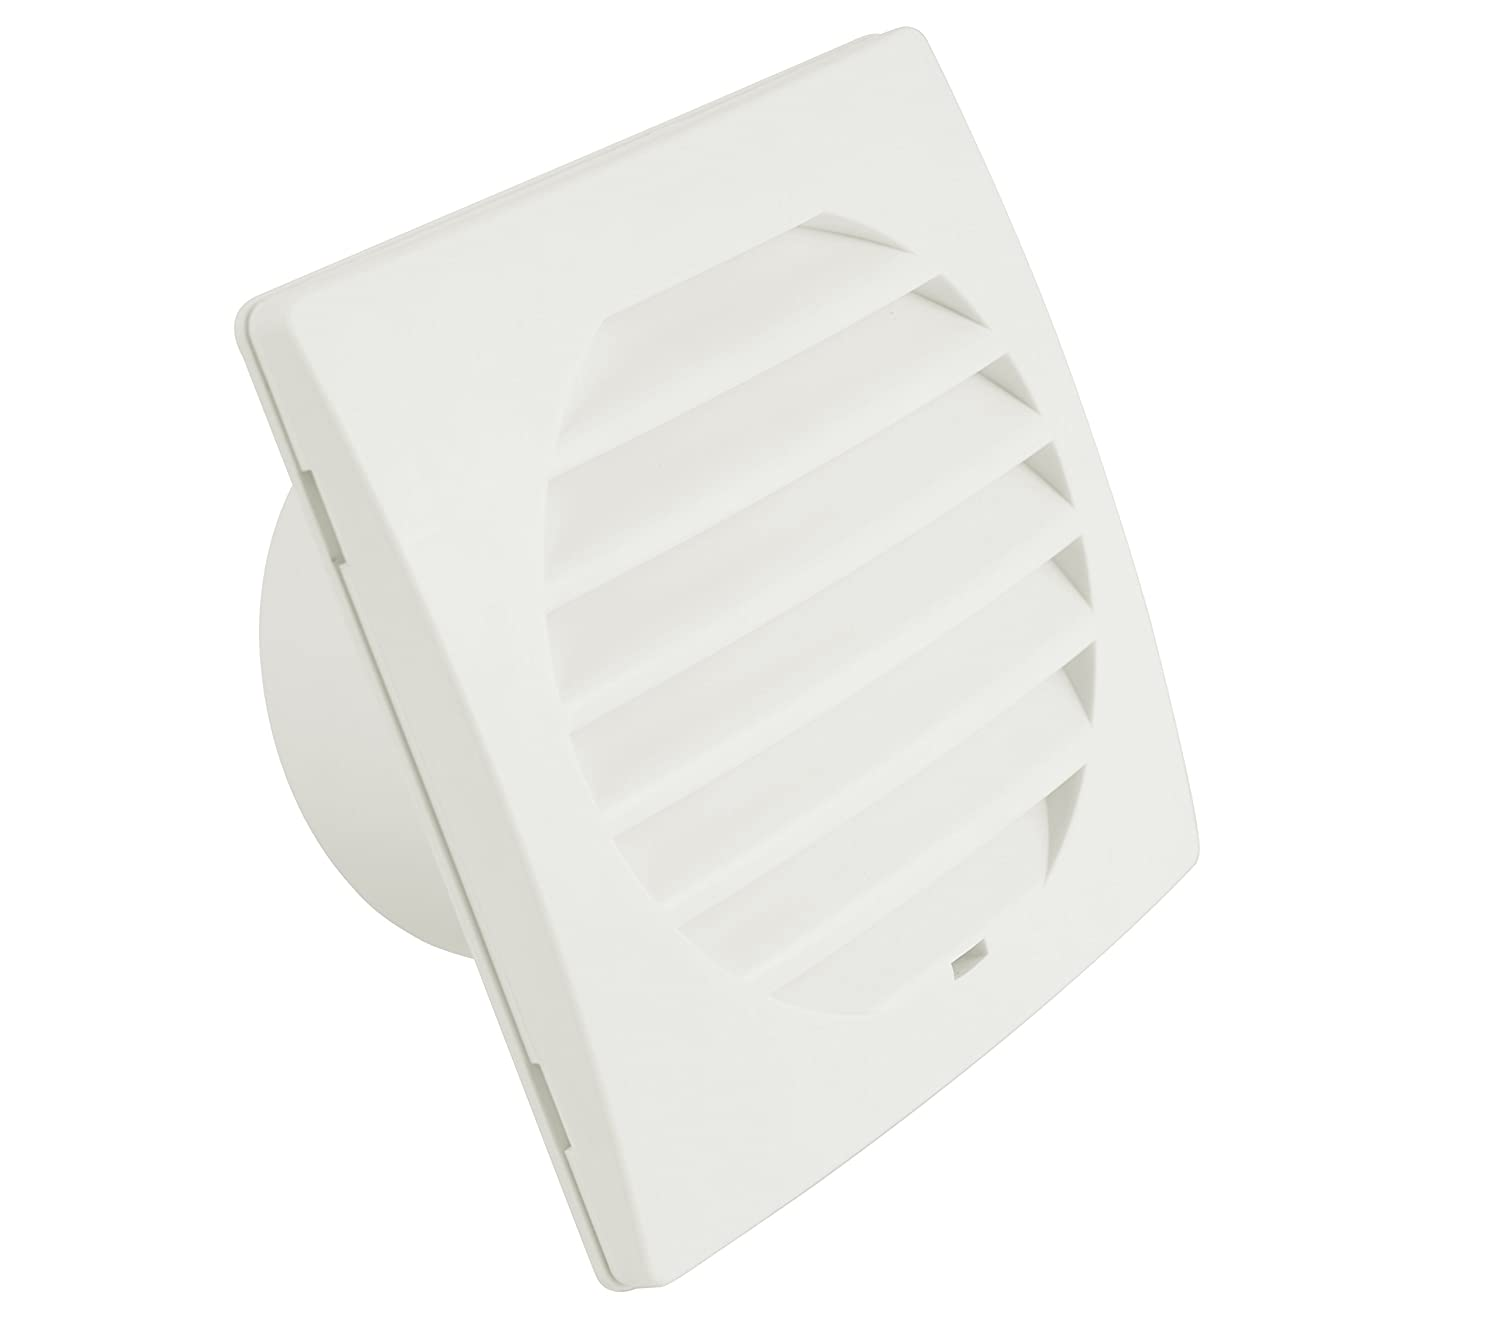 Hon&Guan 4' Plastic Air Duct Cover Square Ventilation Vent Inlet Oulet 150*150mm - ABS